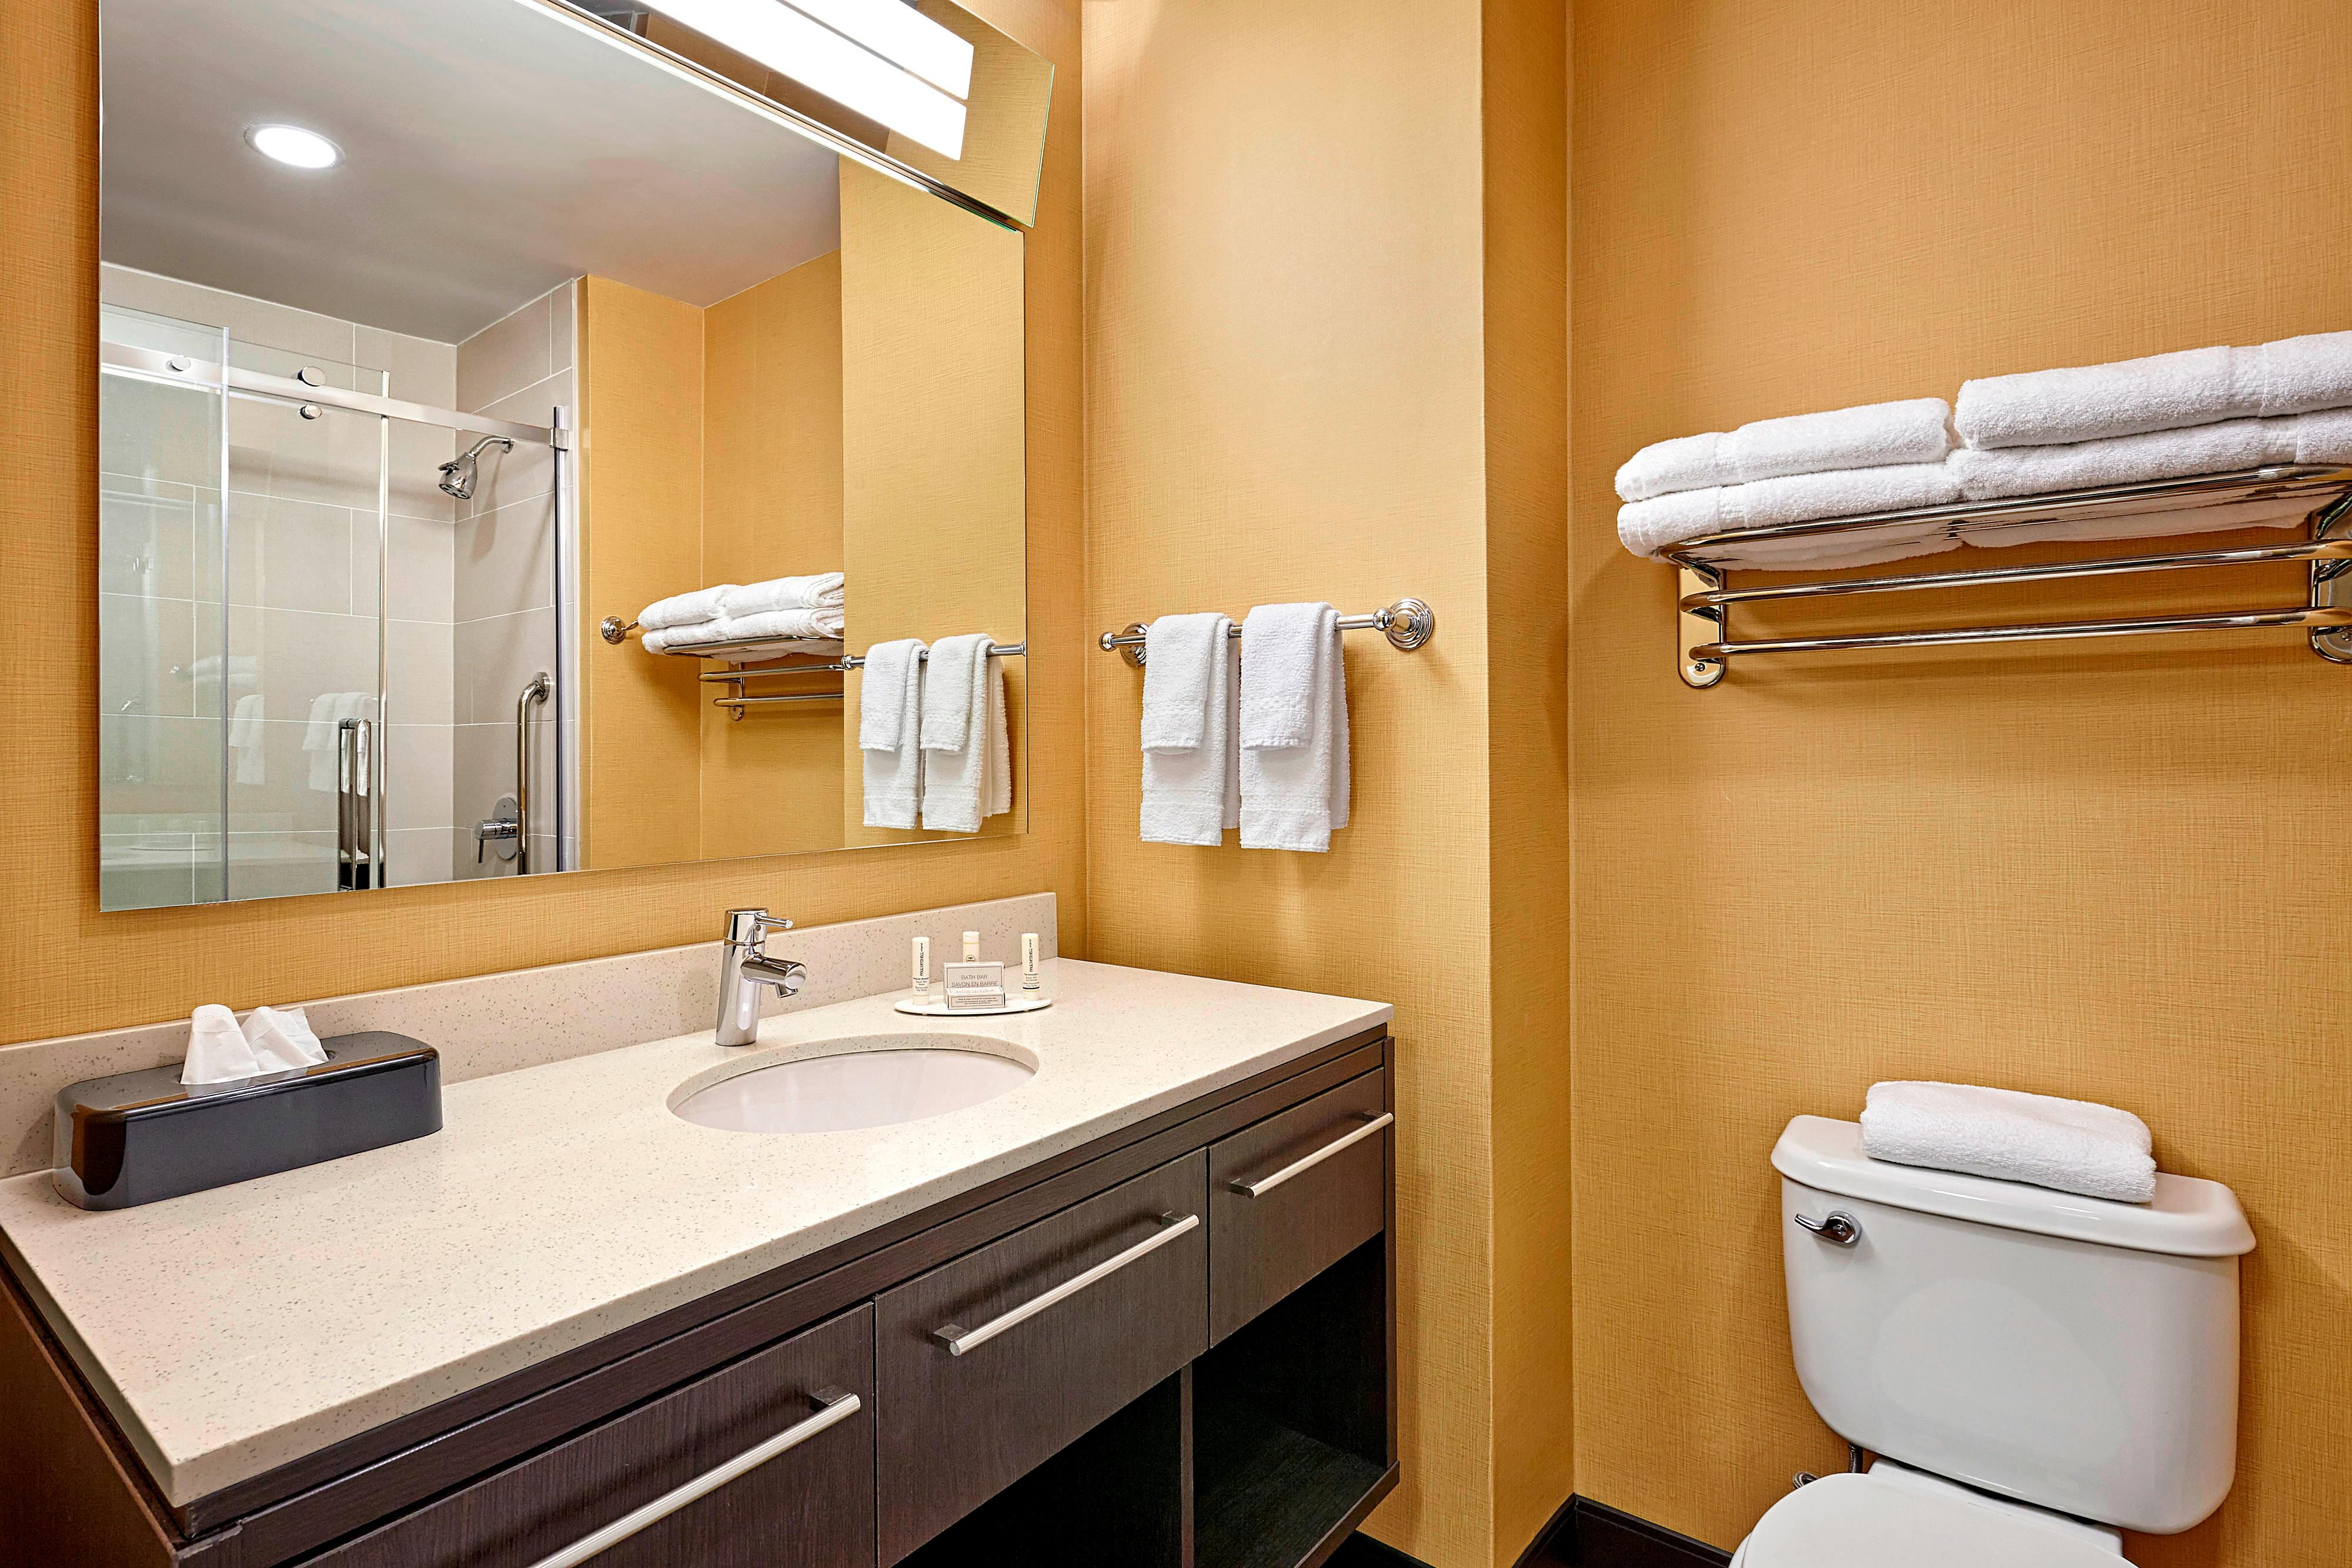 Suite Vanity & Bathroom Area